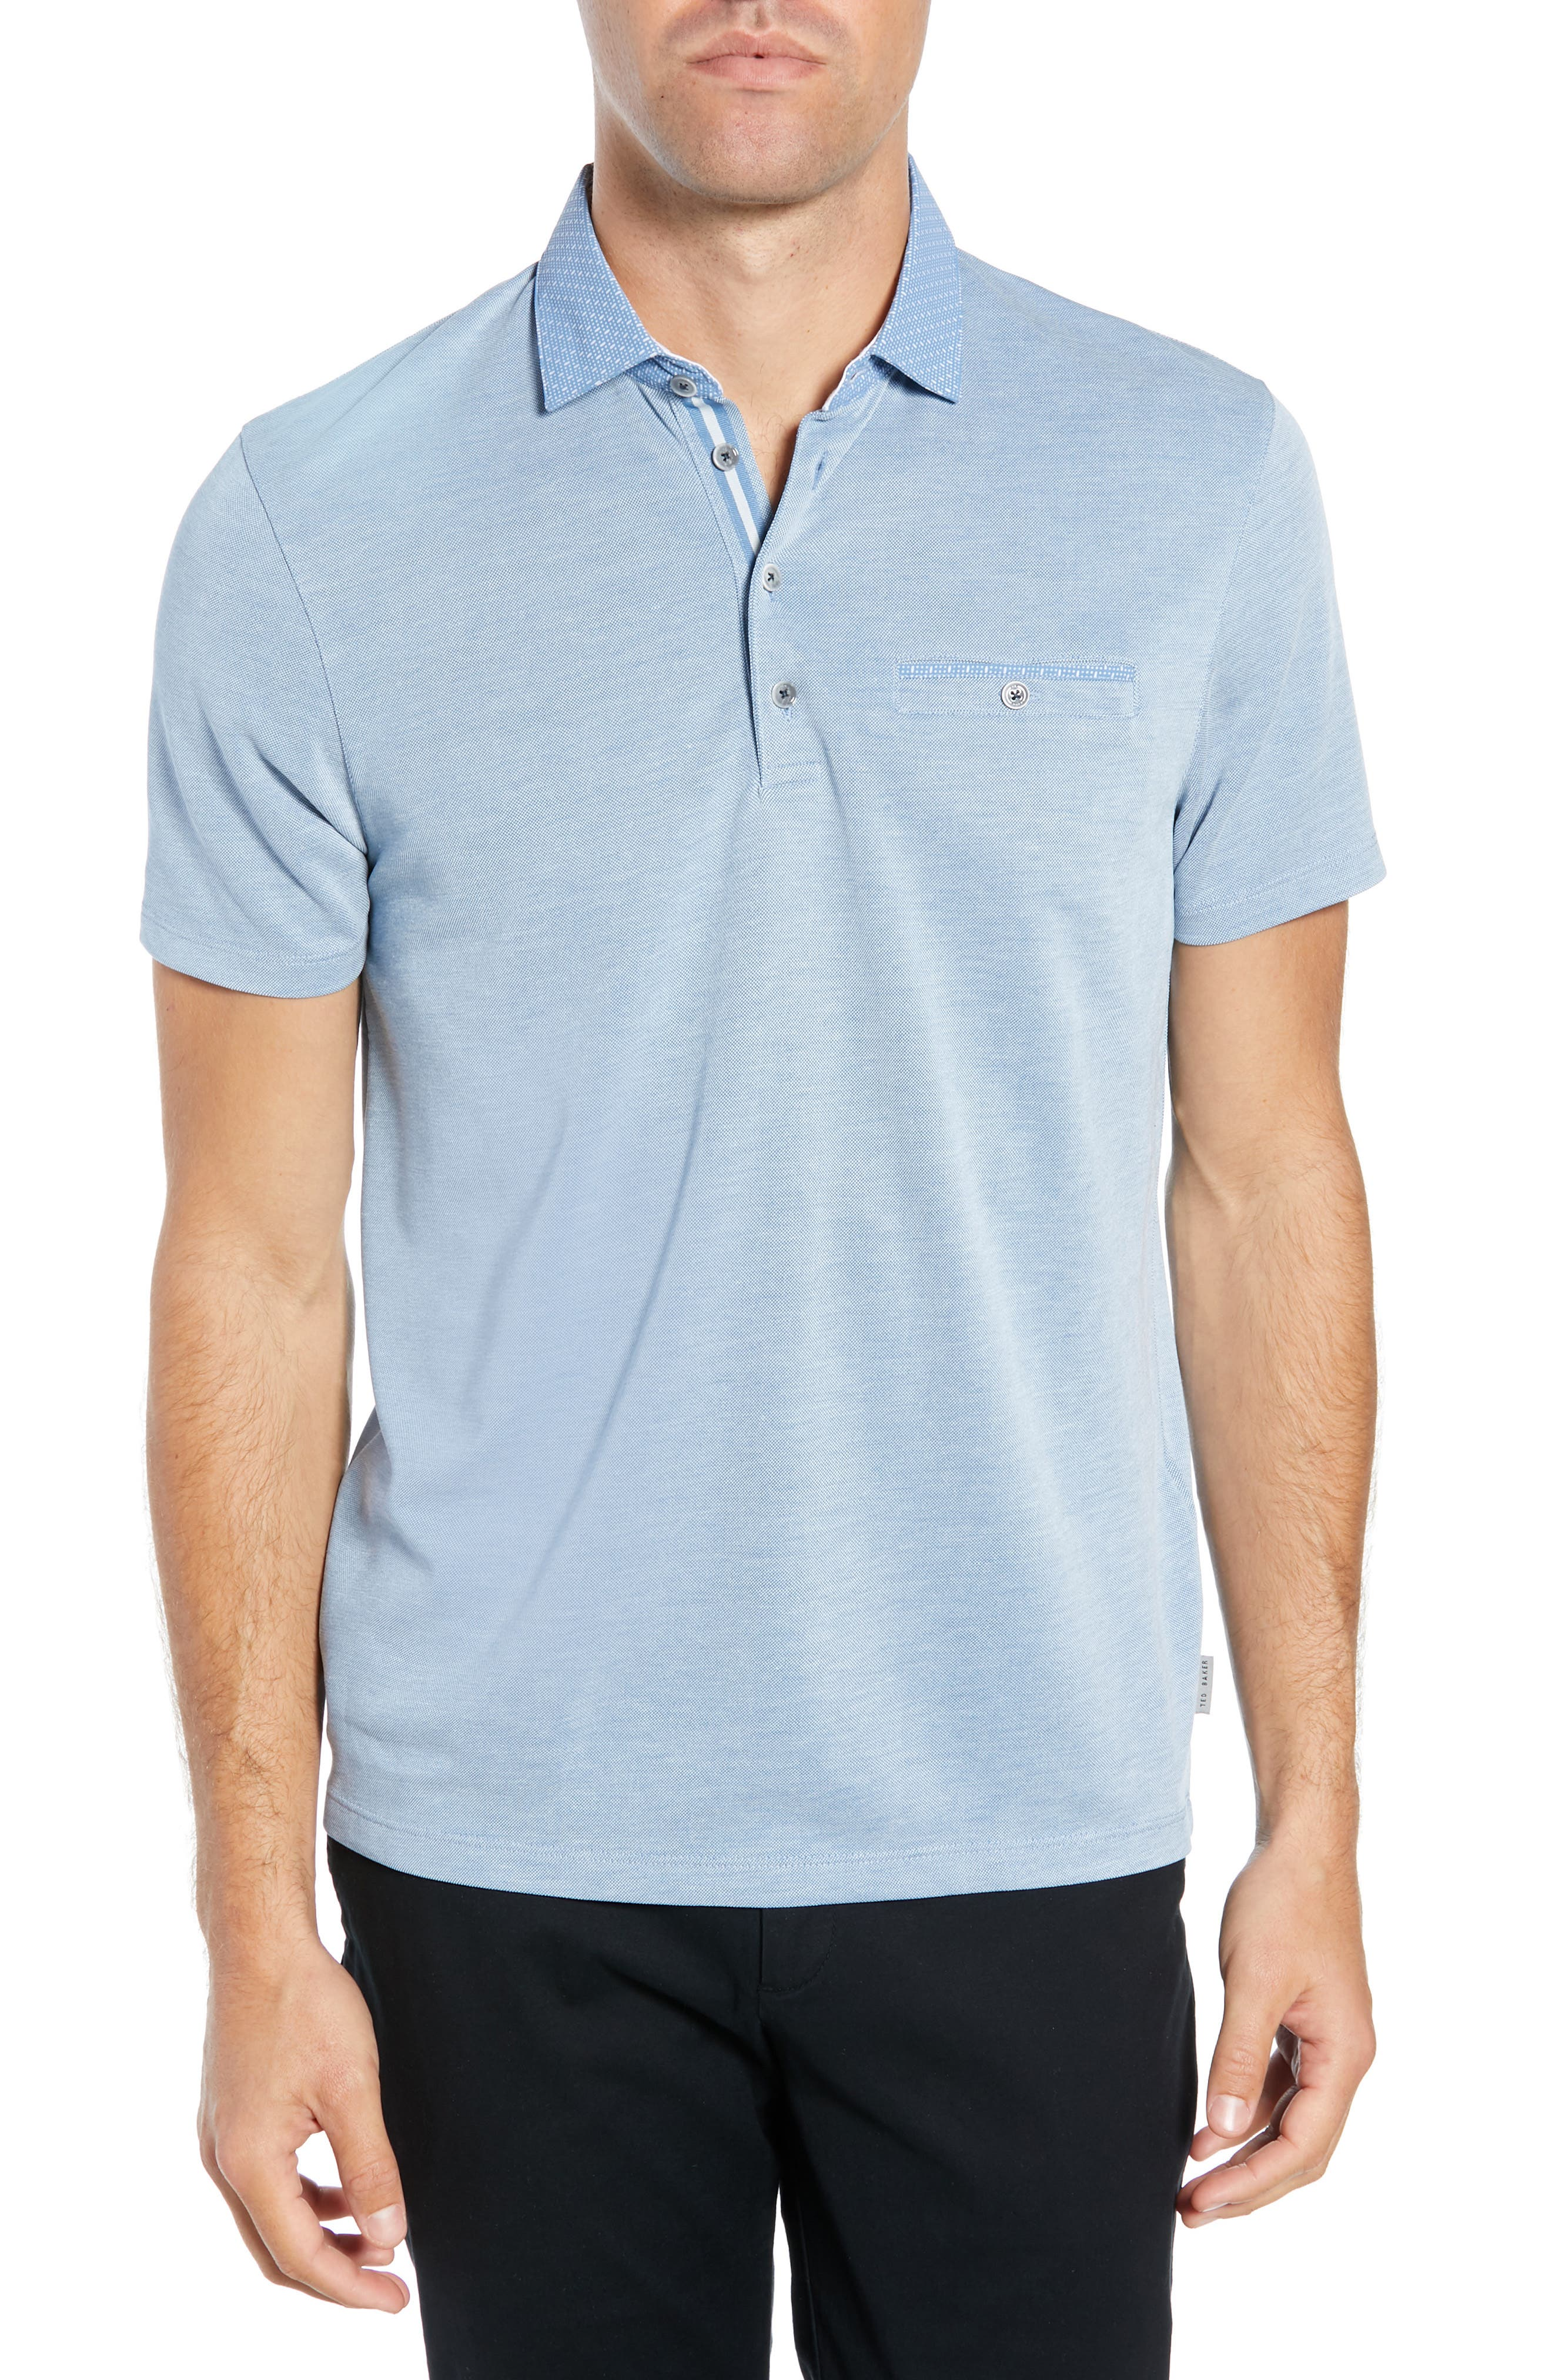 a645a45fe Ted Baker London Men s Polo Shirts Clothing